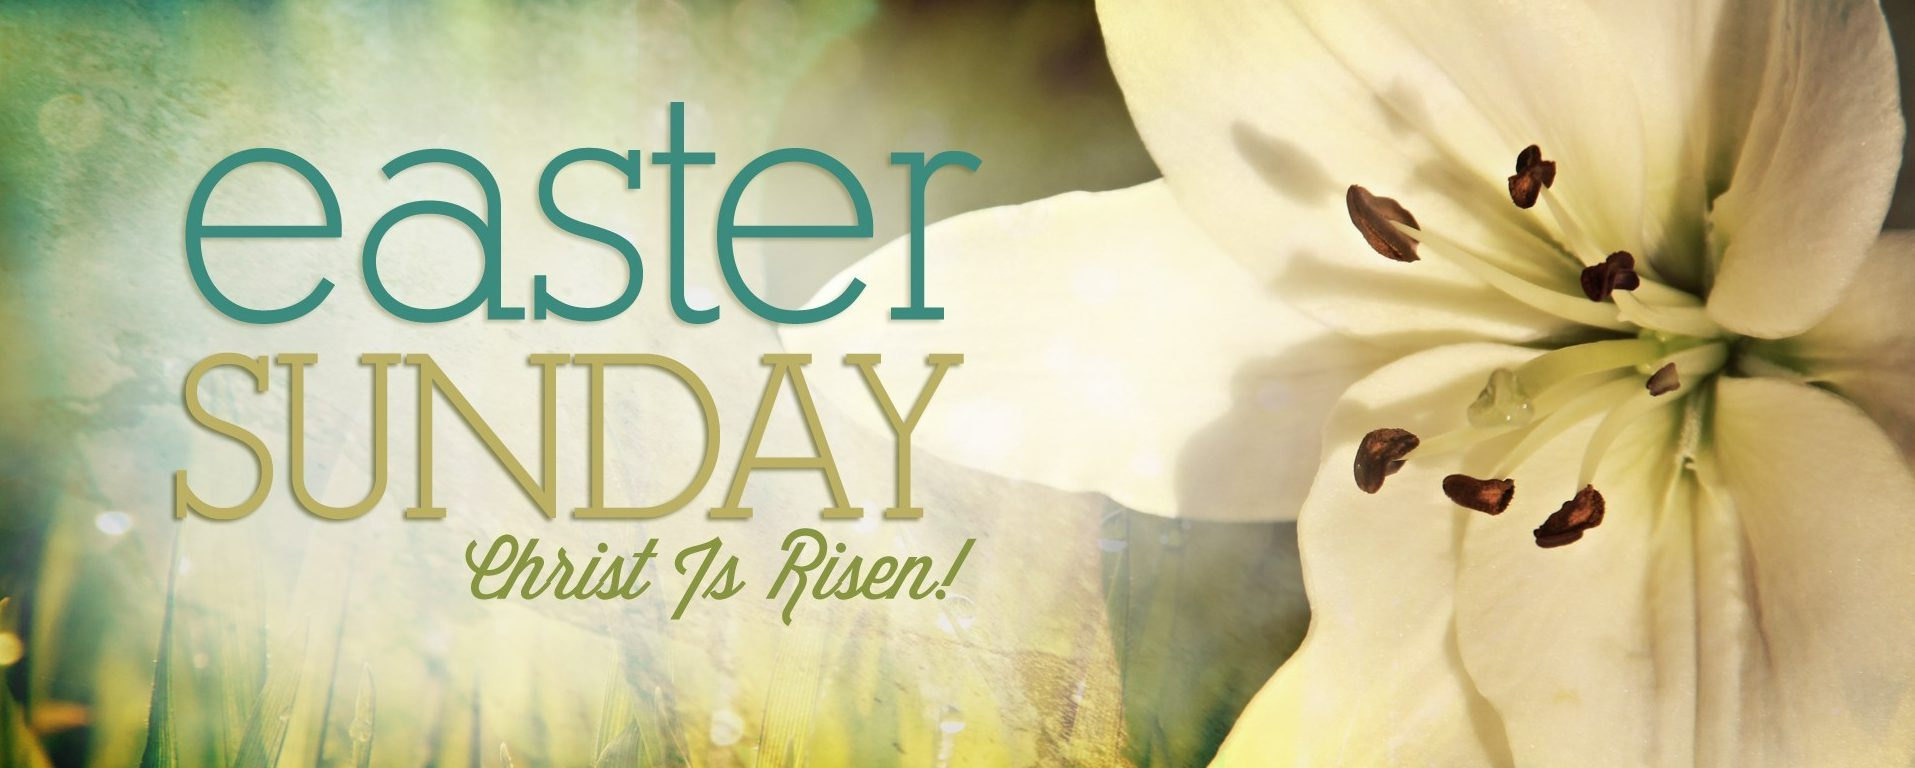 Easter Sunday Images For Facebook